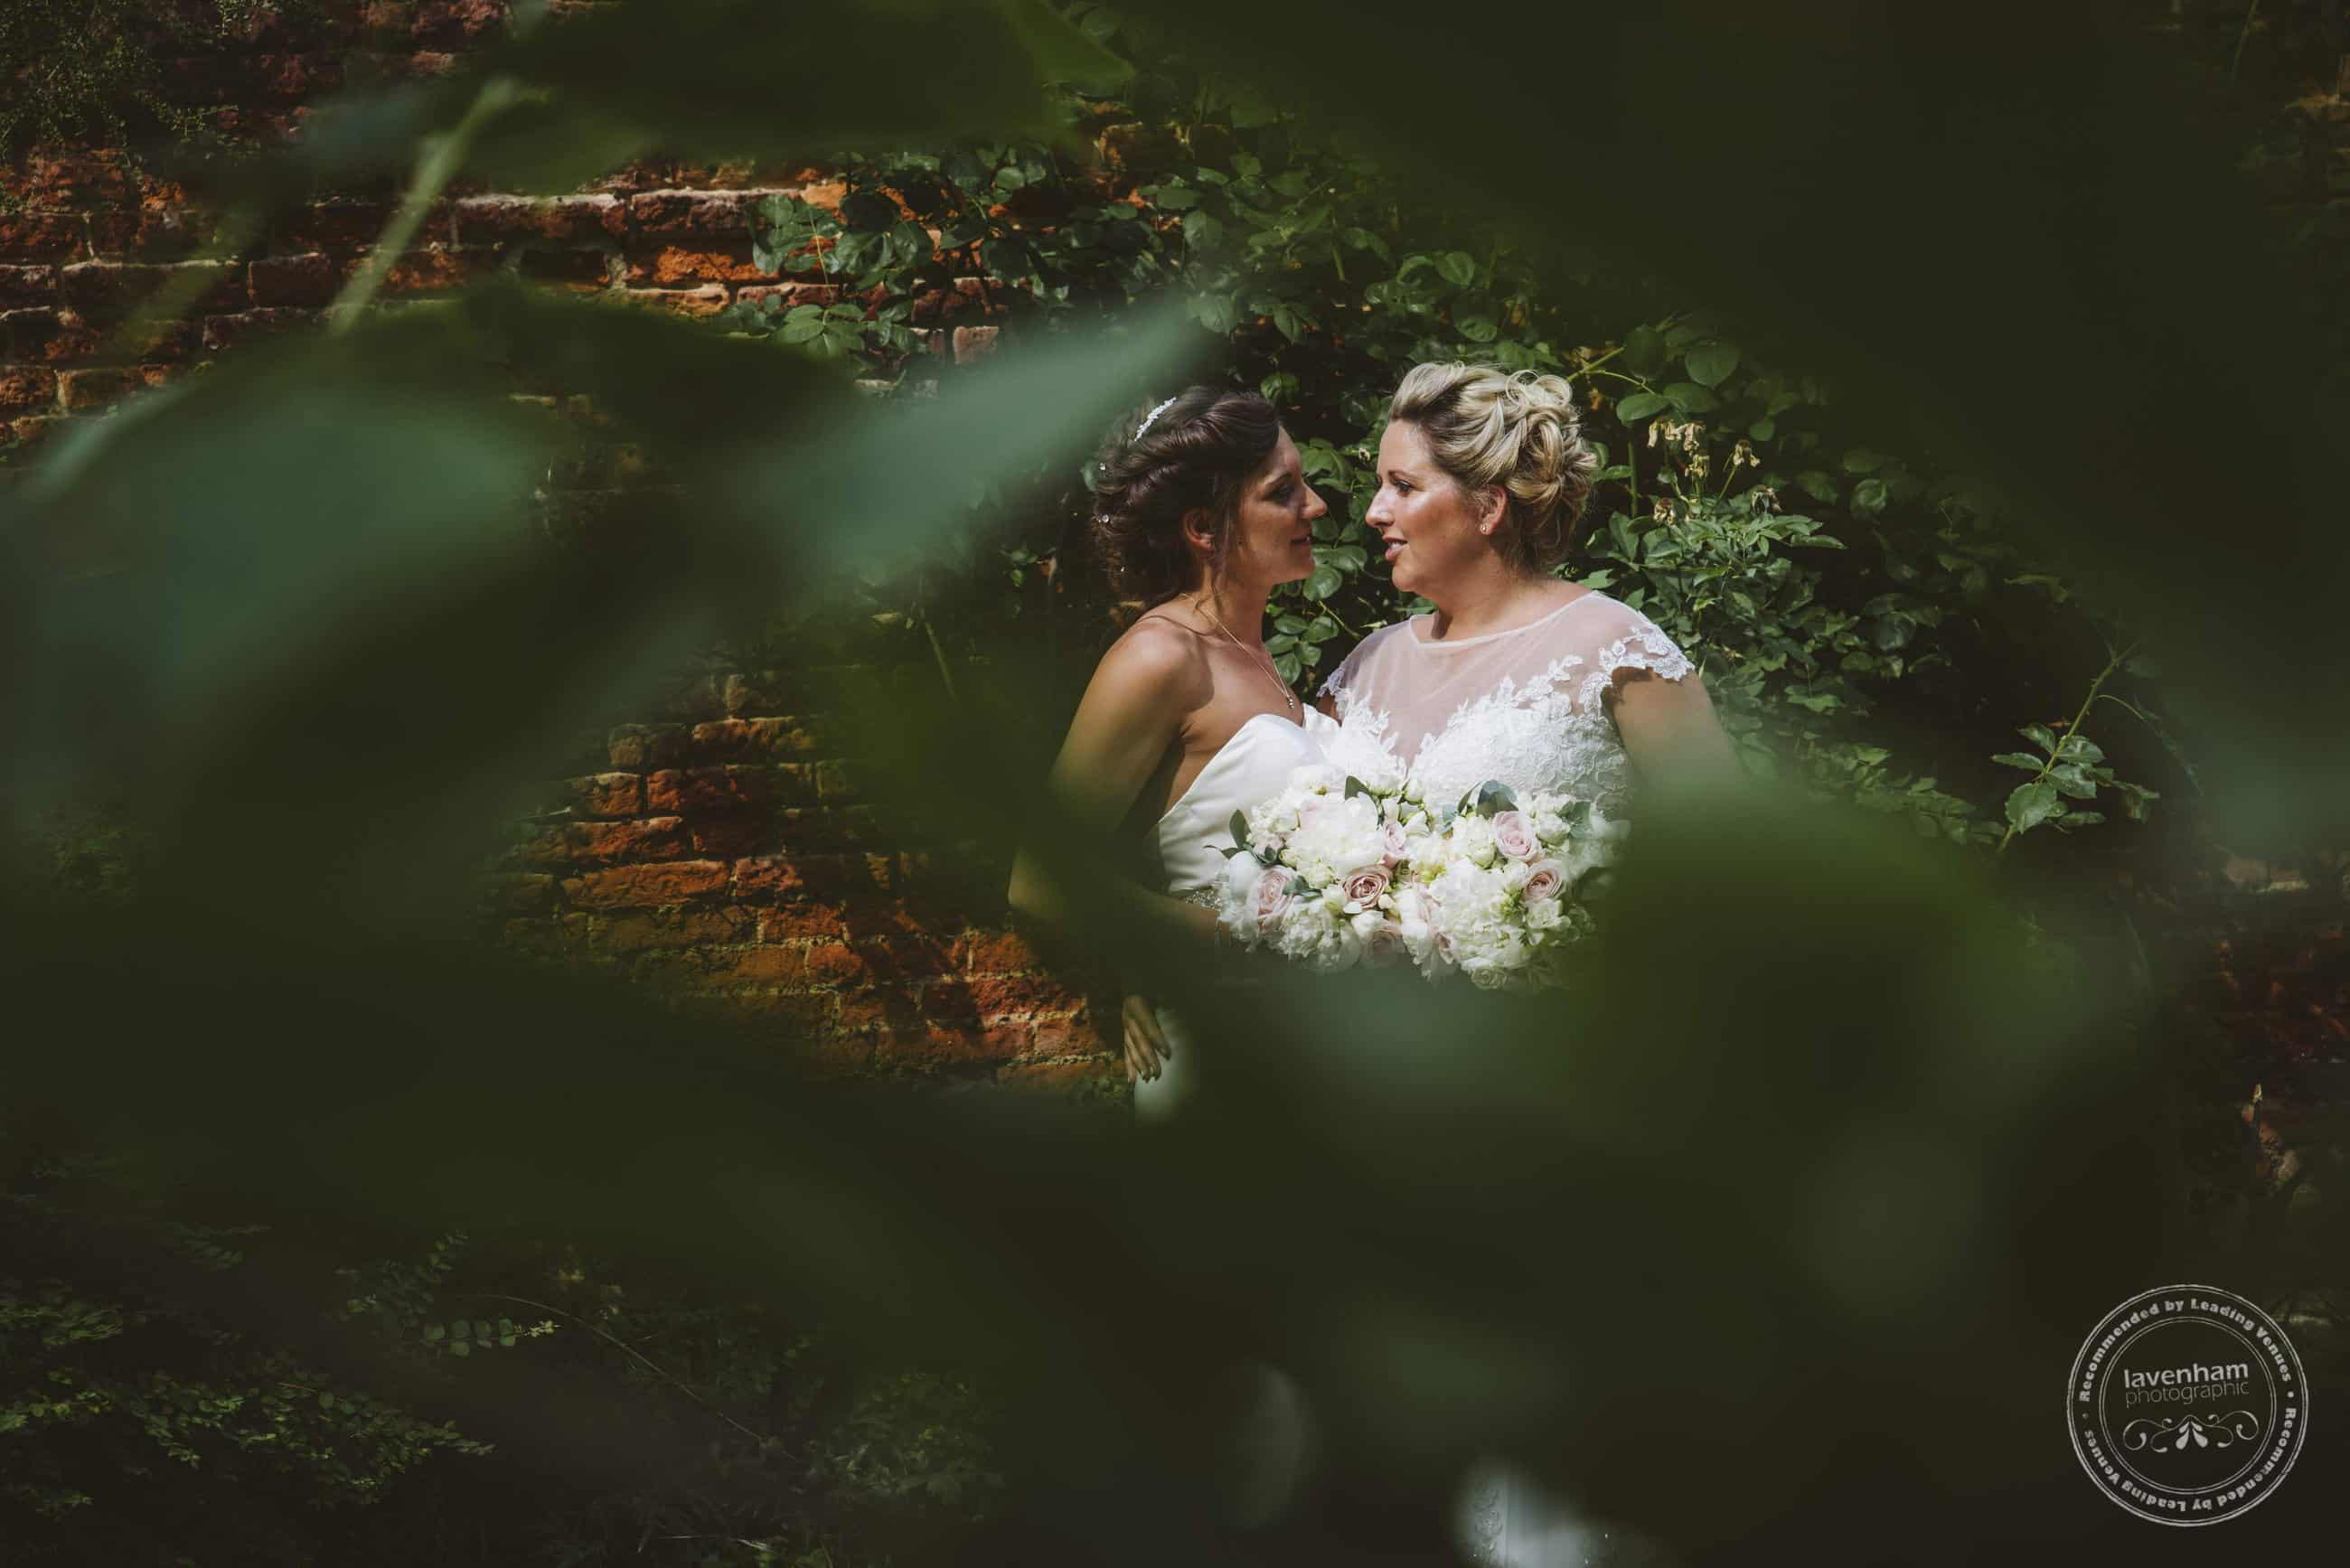 Framing a photograph through leafy foliage during a romantic photoshoot gives a more candid feel